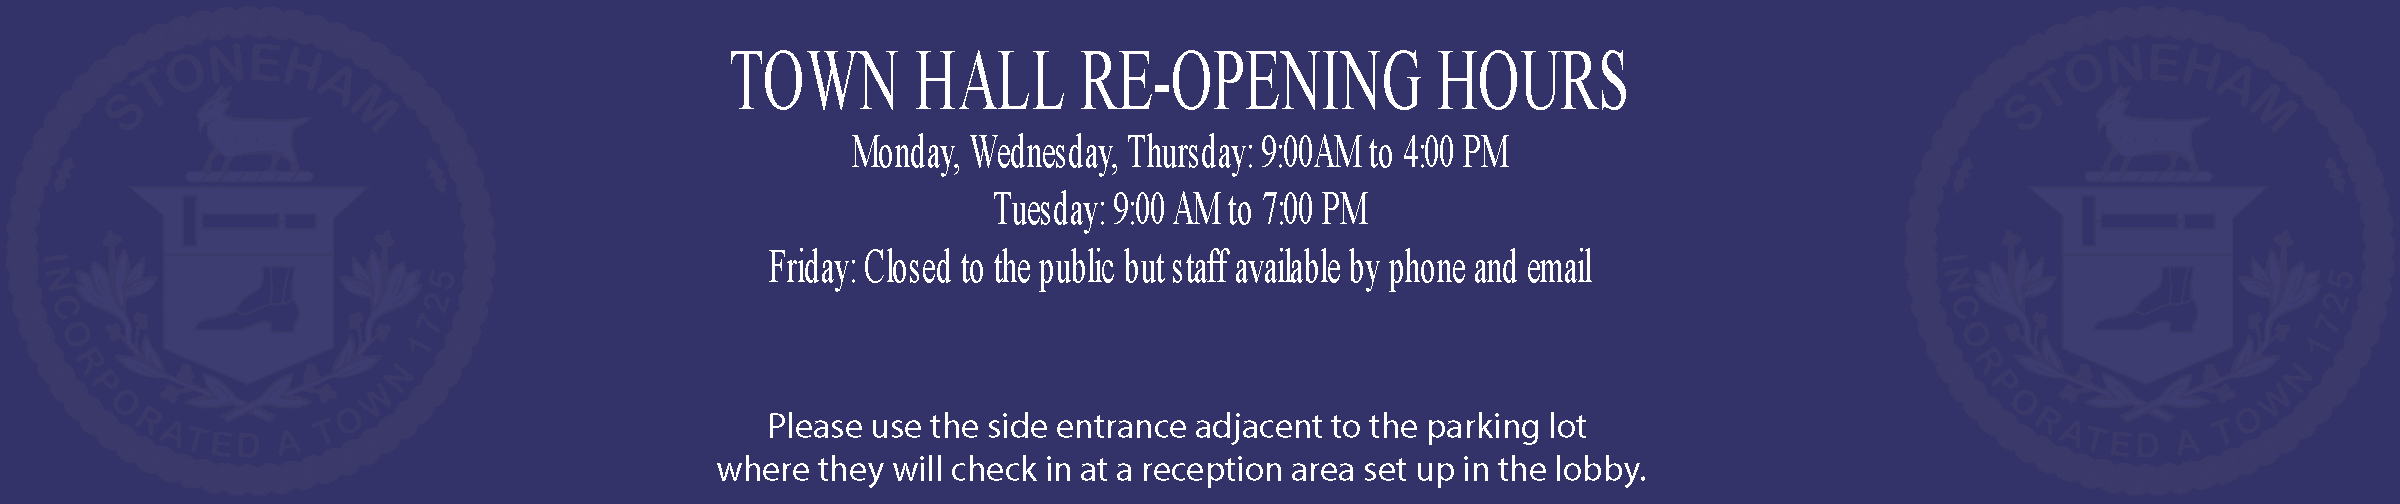 Townhall-Reopening